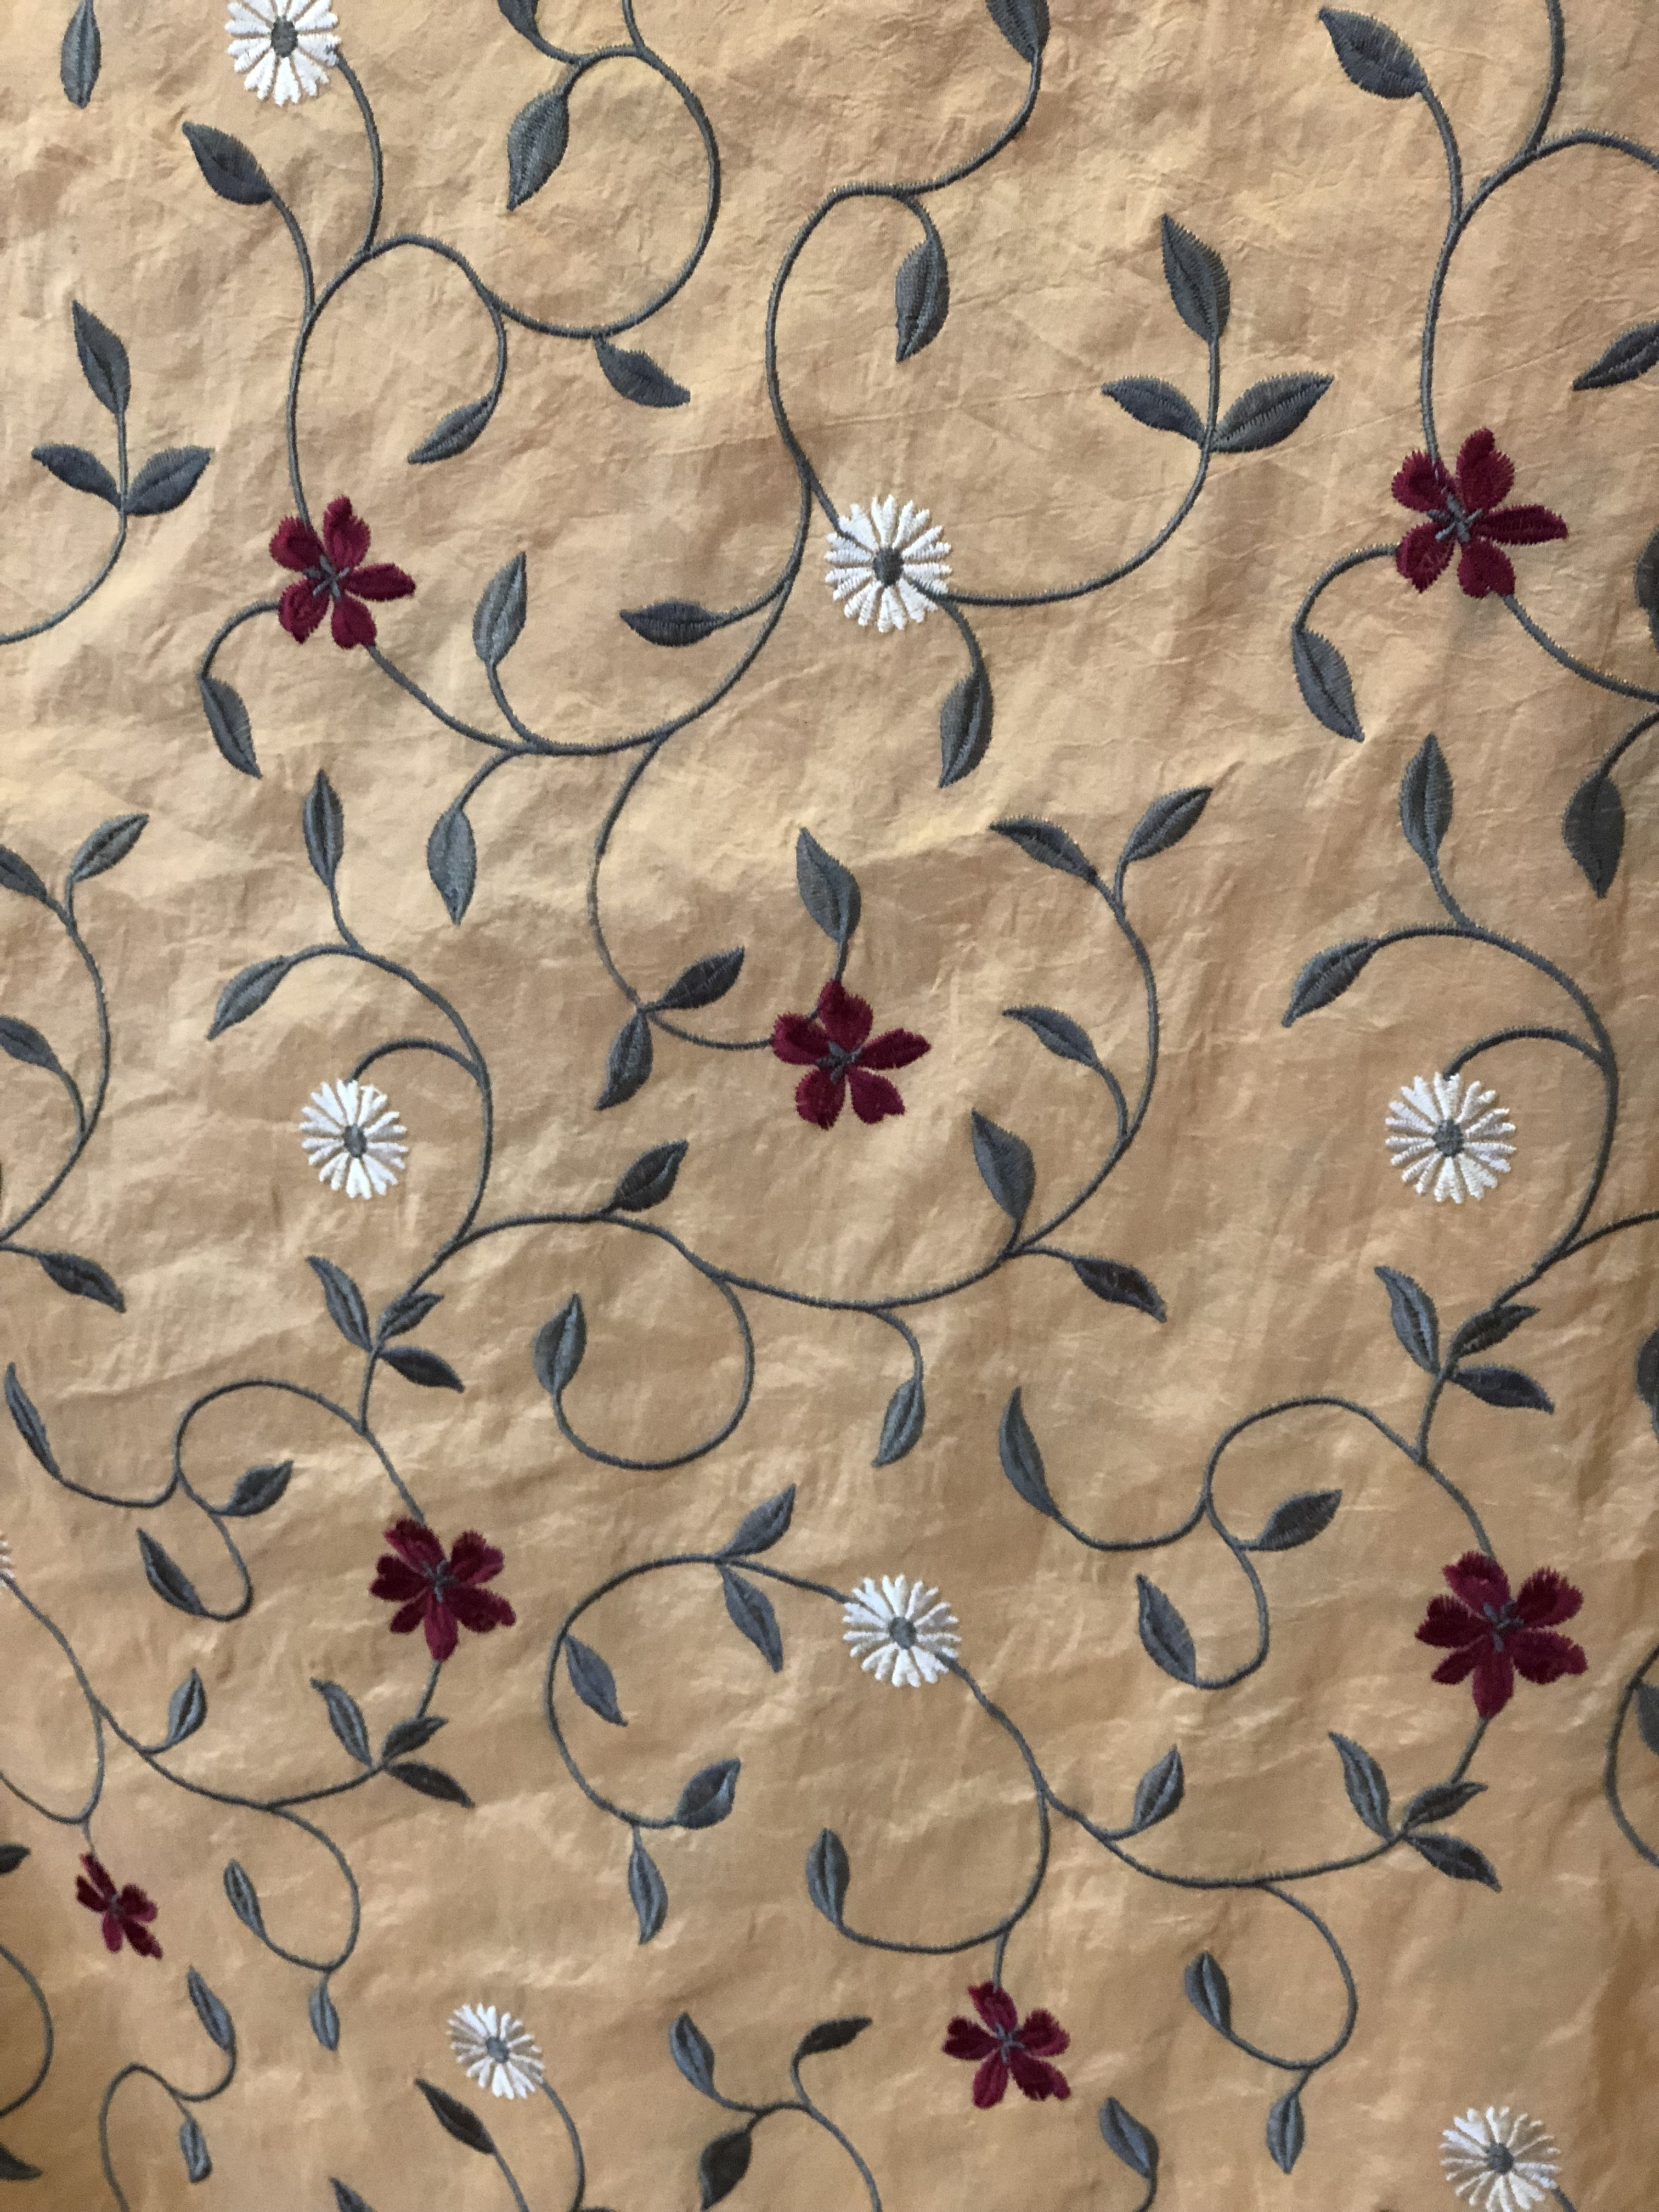 Floral Upholstery Fabric 00013